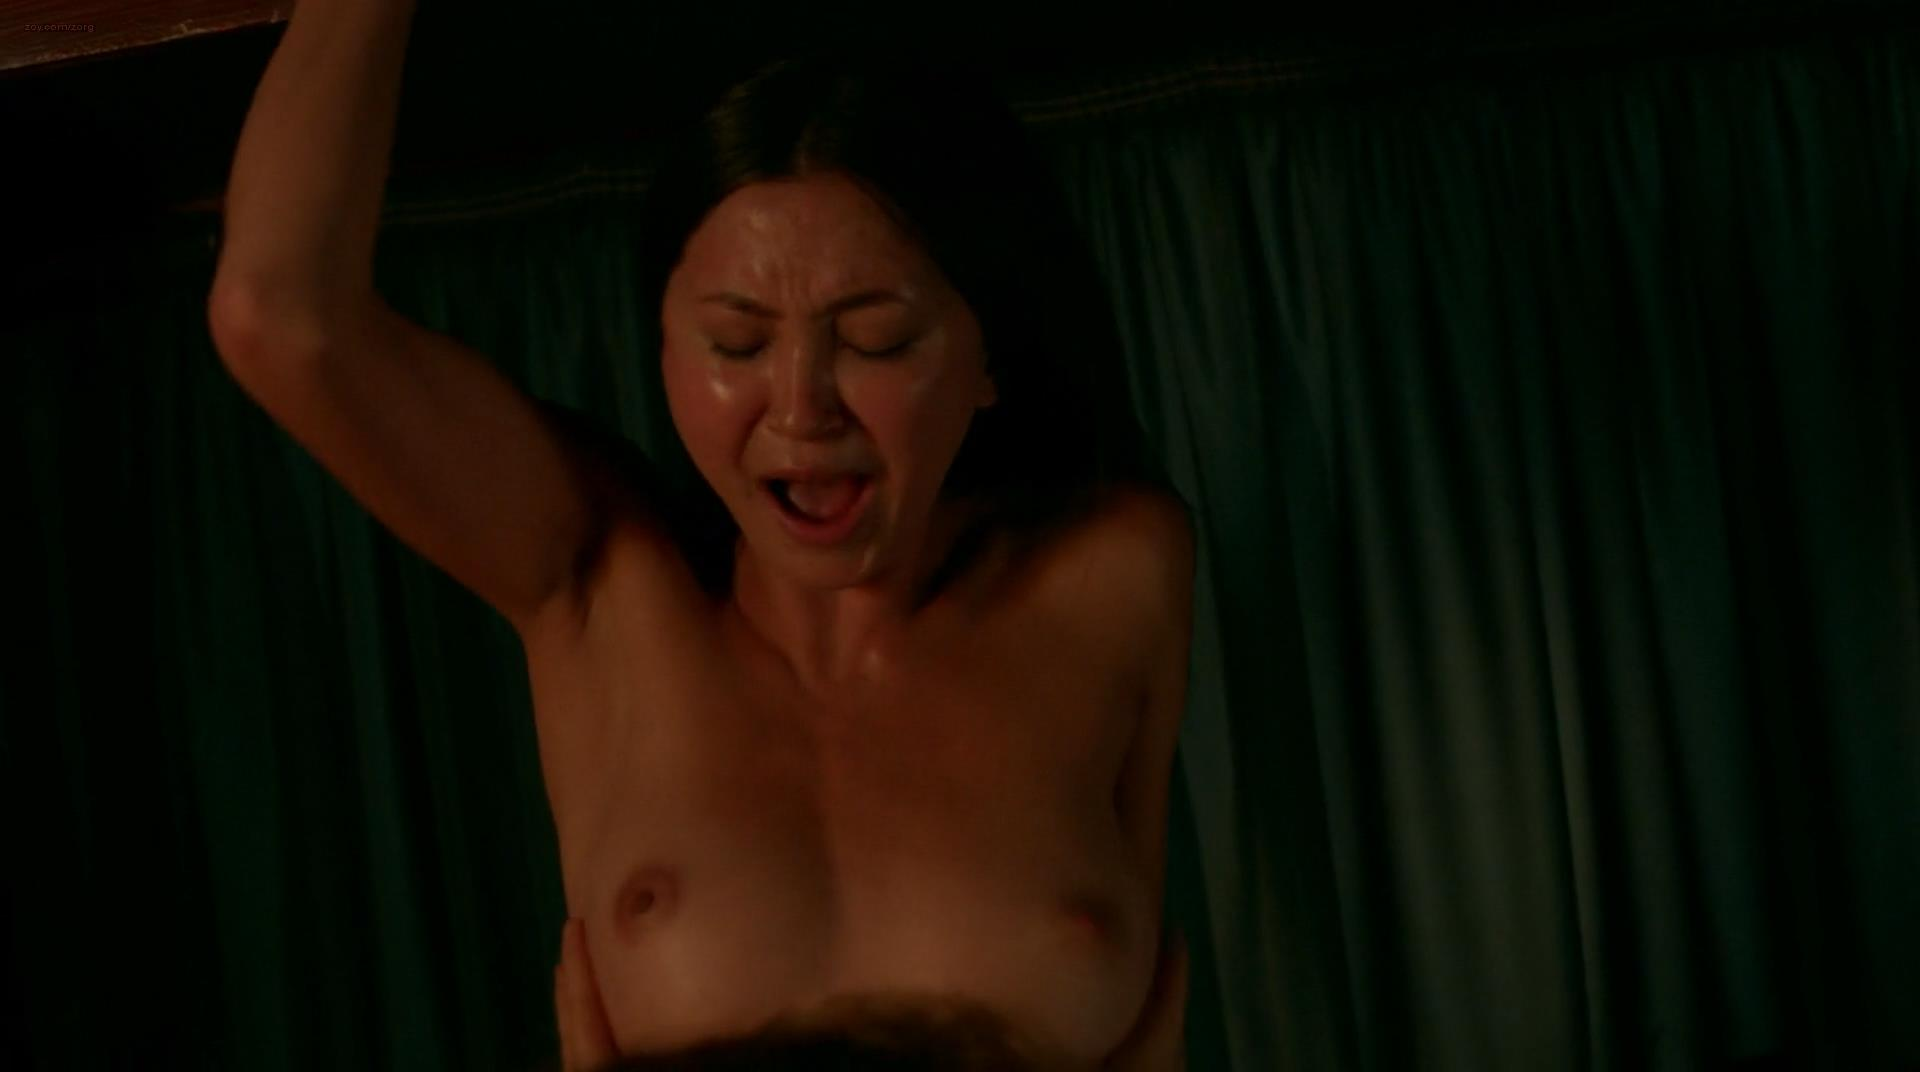 Kimiko Glenn nude and Natasha Lyonne not nude hot lesbian sex - Orange is the New Black (2014) s2e4 hd1080p